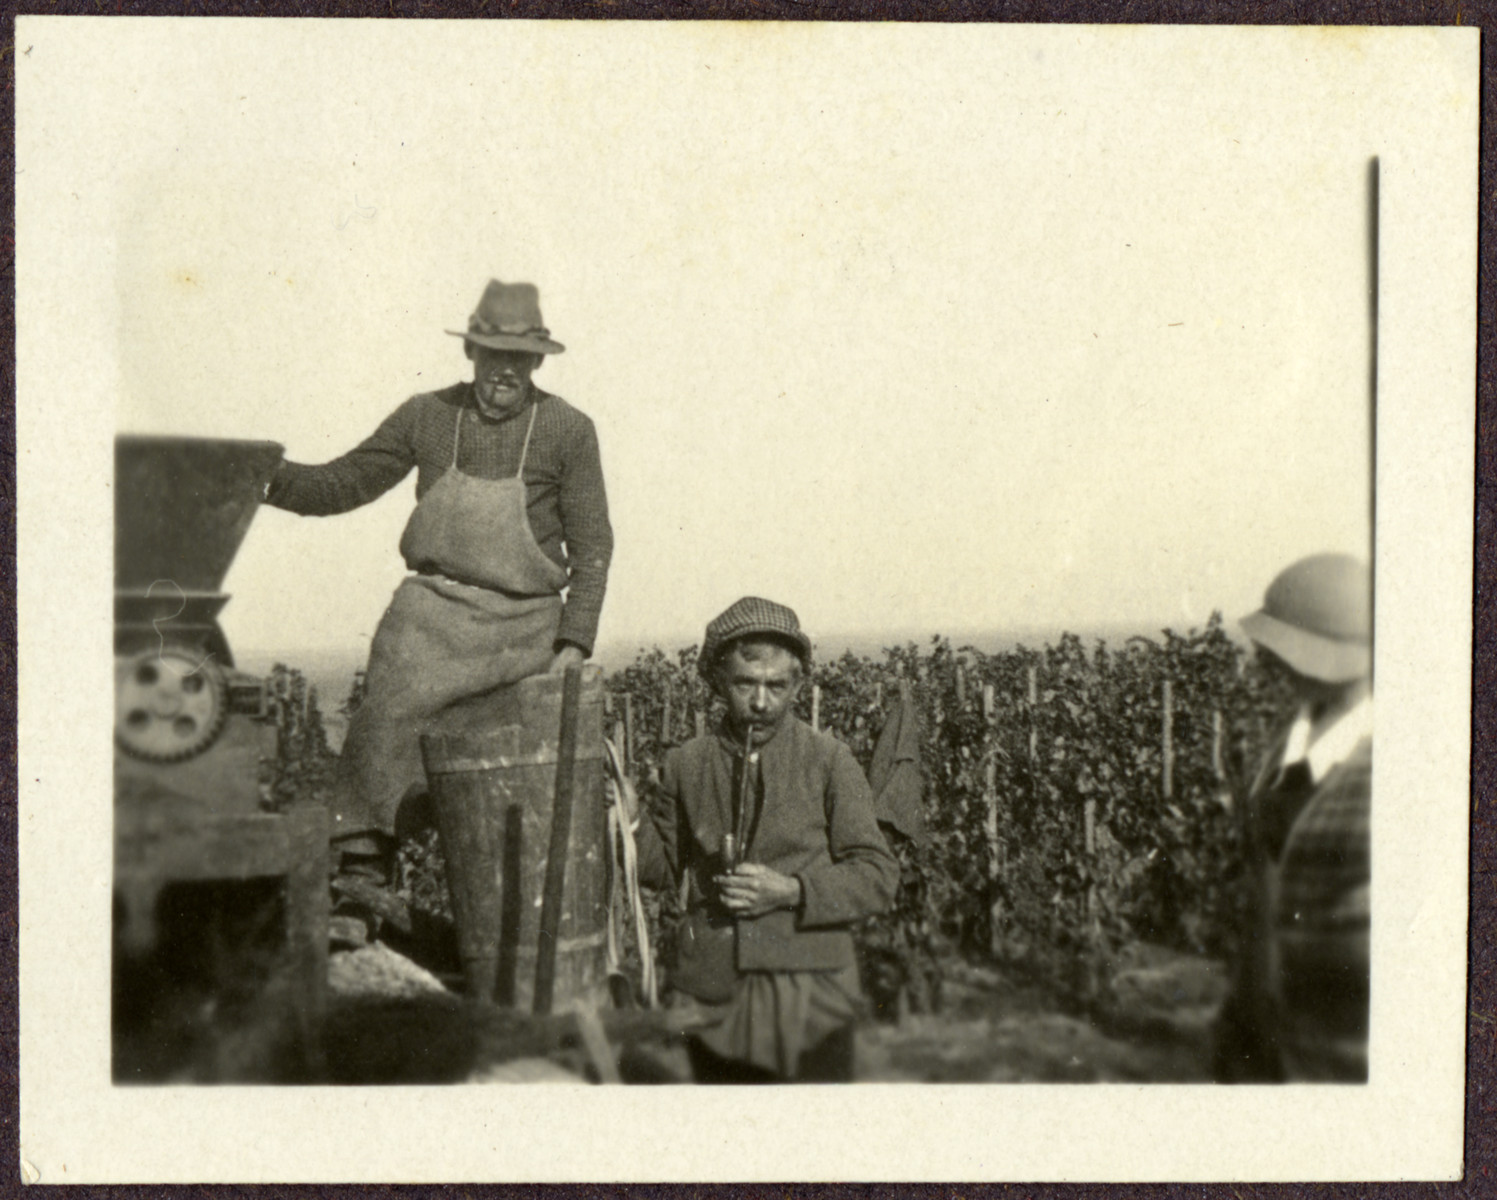 Farmhands work on Ludwig Engel's estate in Burgenland, Austria.